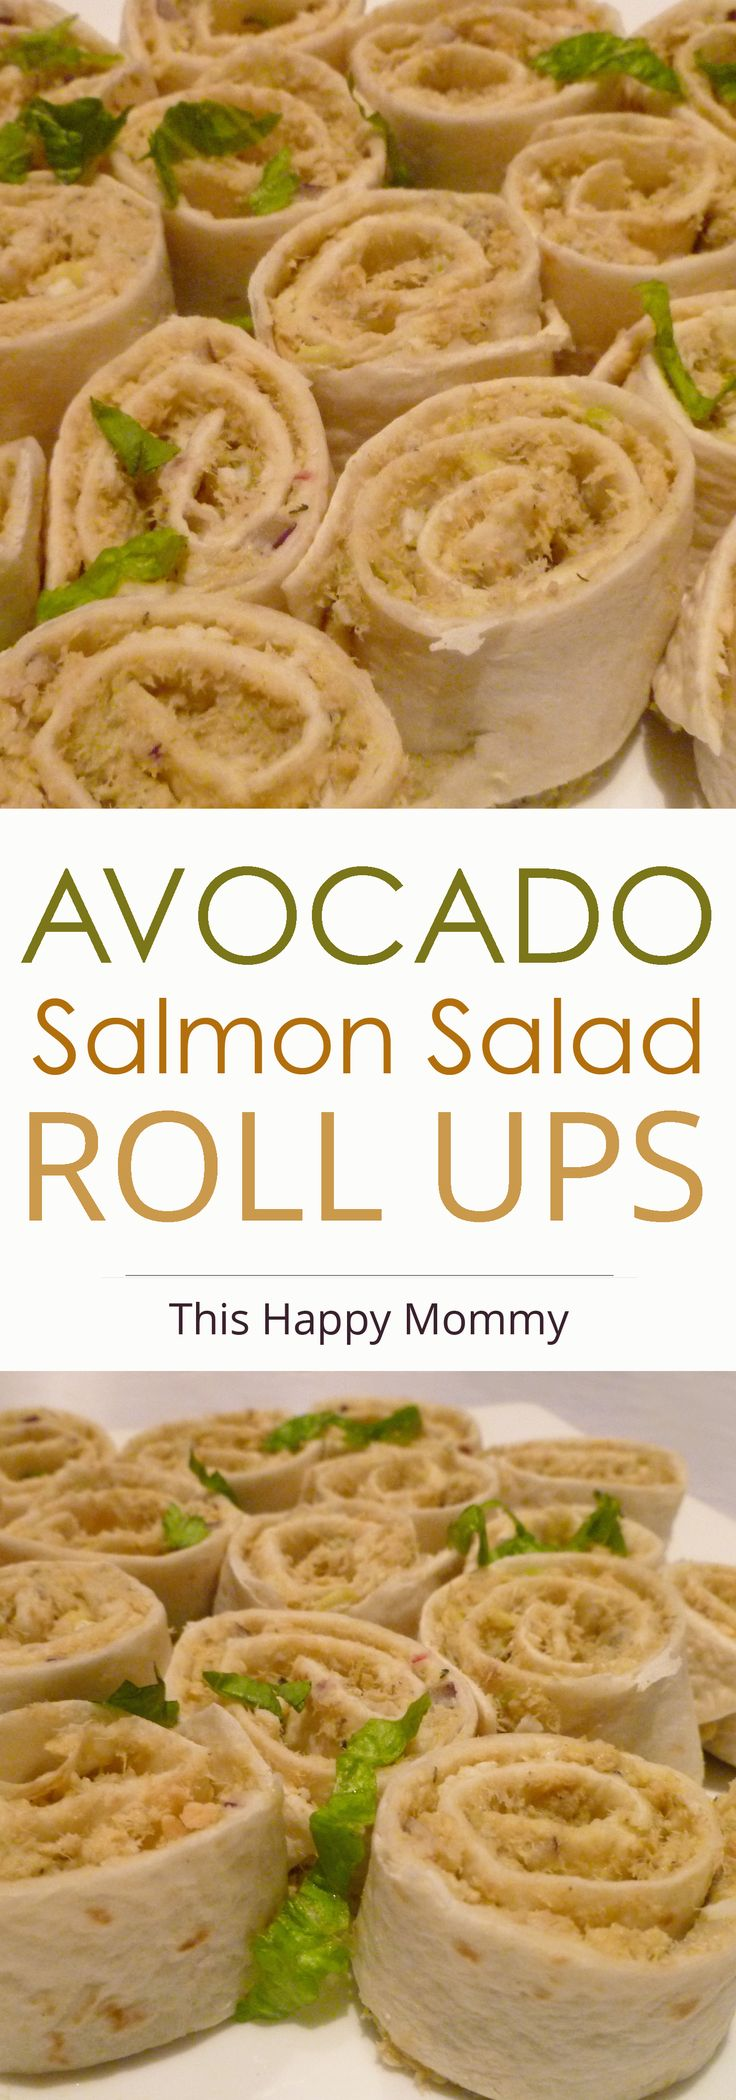 Avocado Salmon Salad Roll Ups -- Healthy salmon salad sandwiches made with creamy avocado, hard boiled egg, red onion, lemon, and dill.   thishappymommy.com